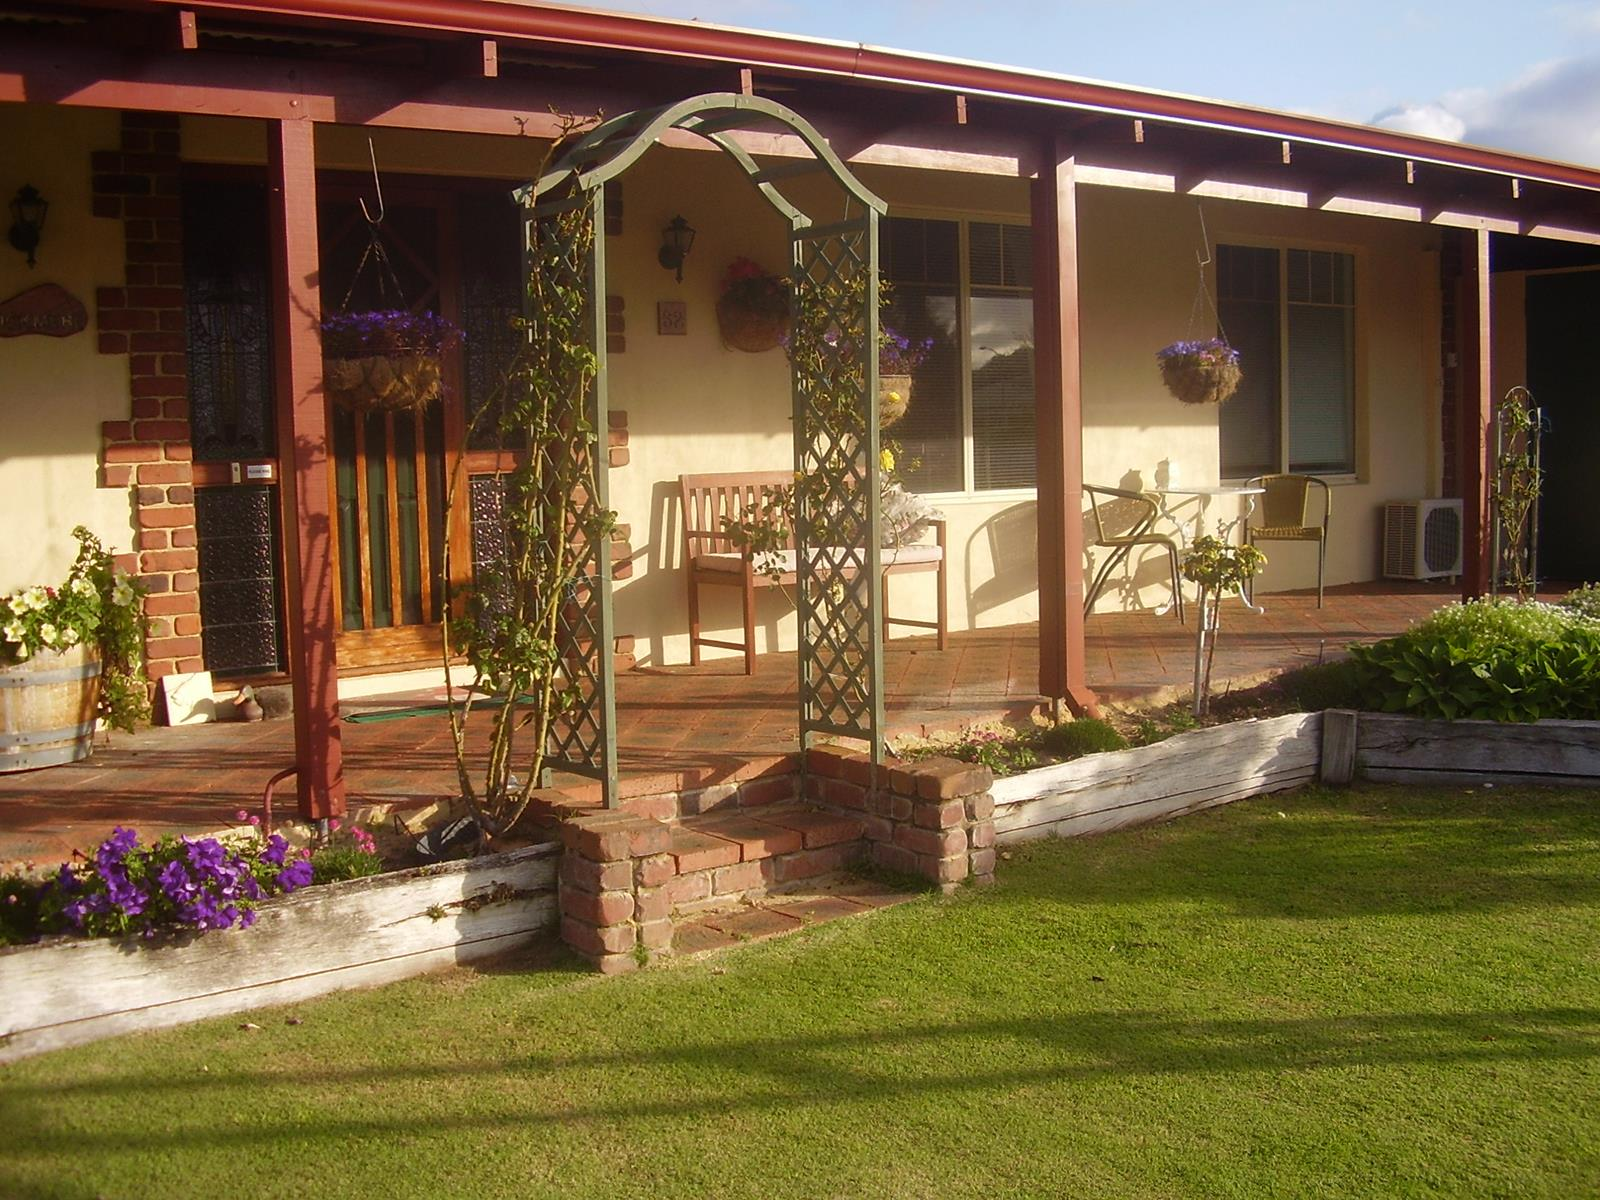 Busselton Marina Bed & Breakfast